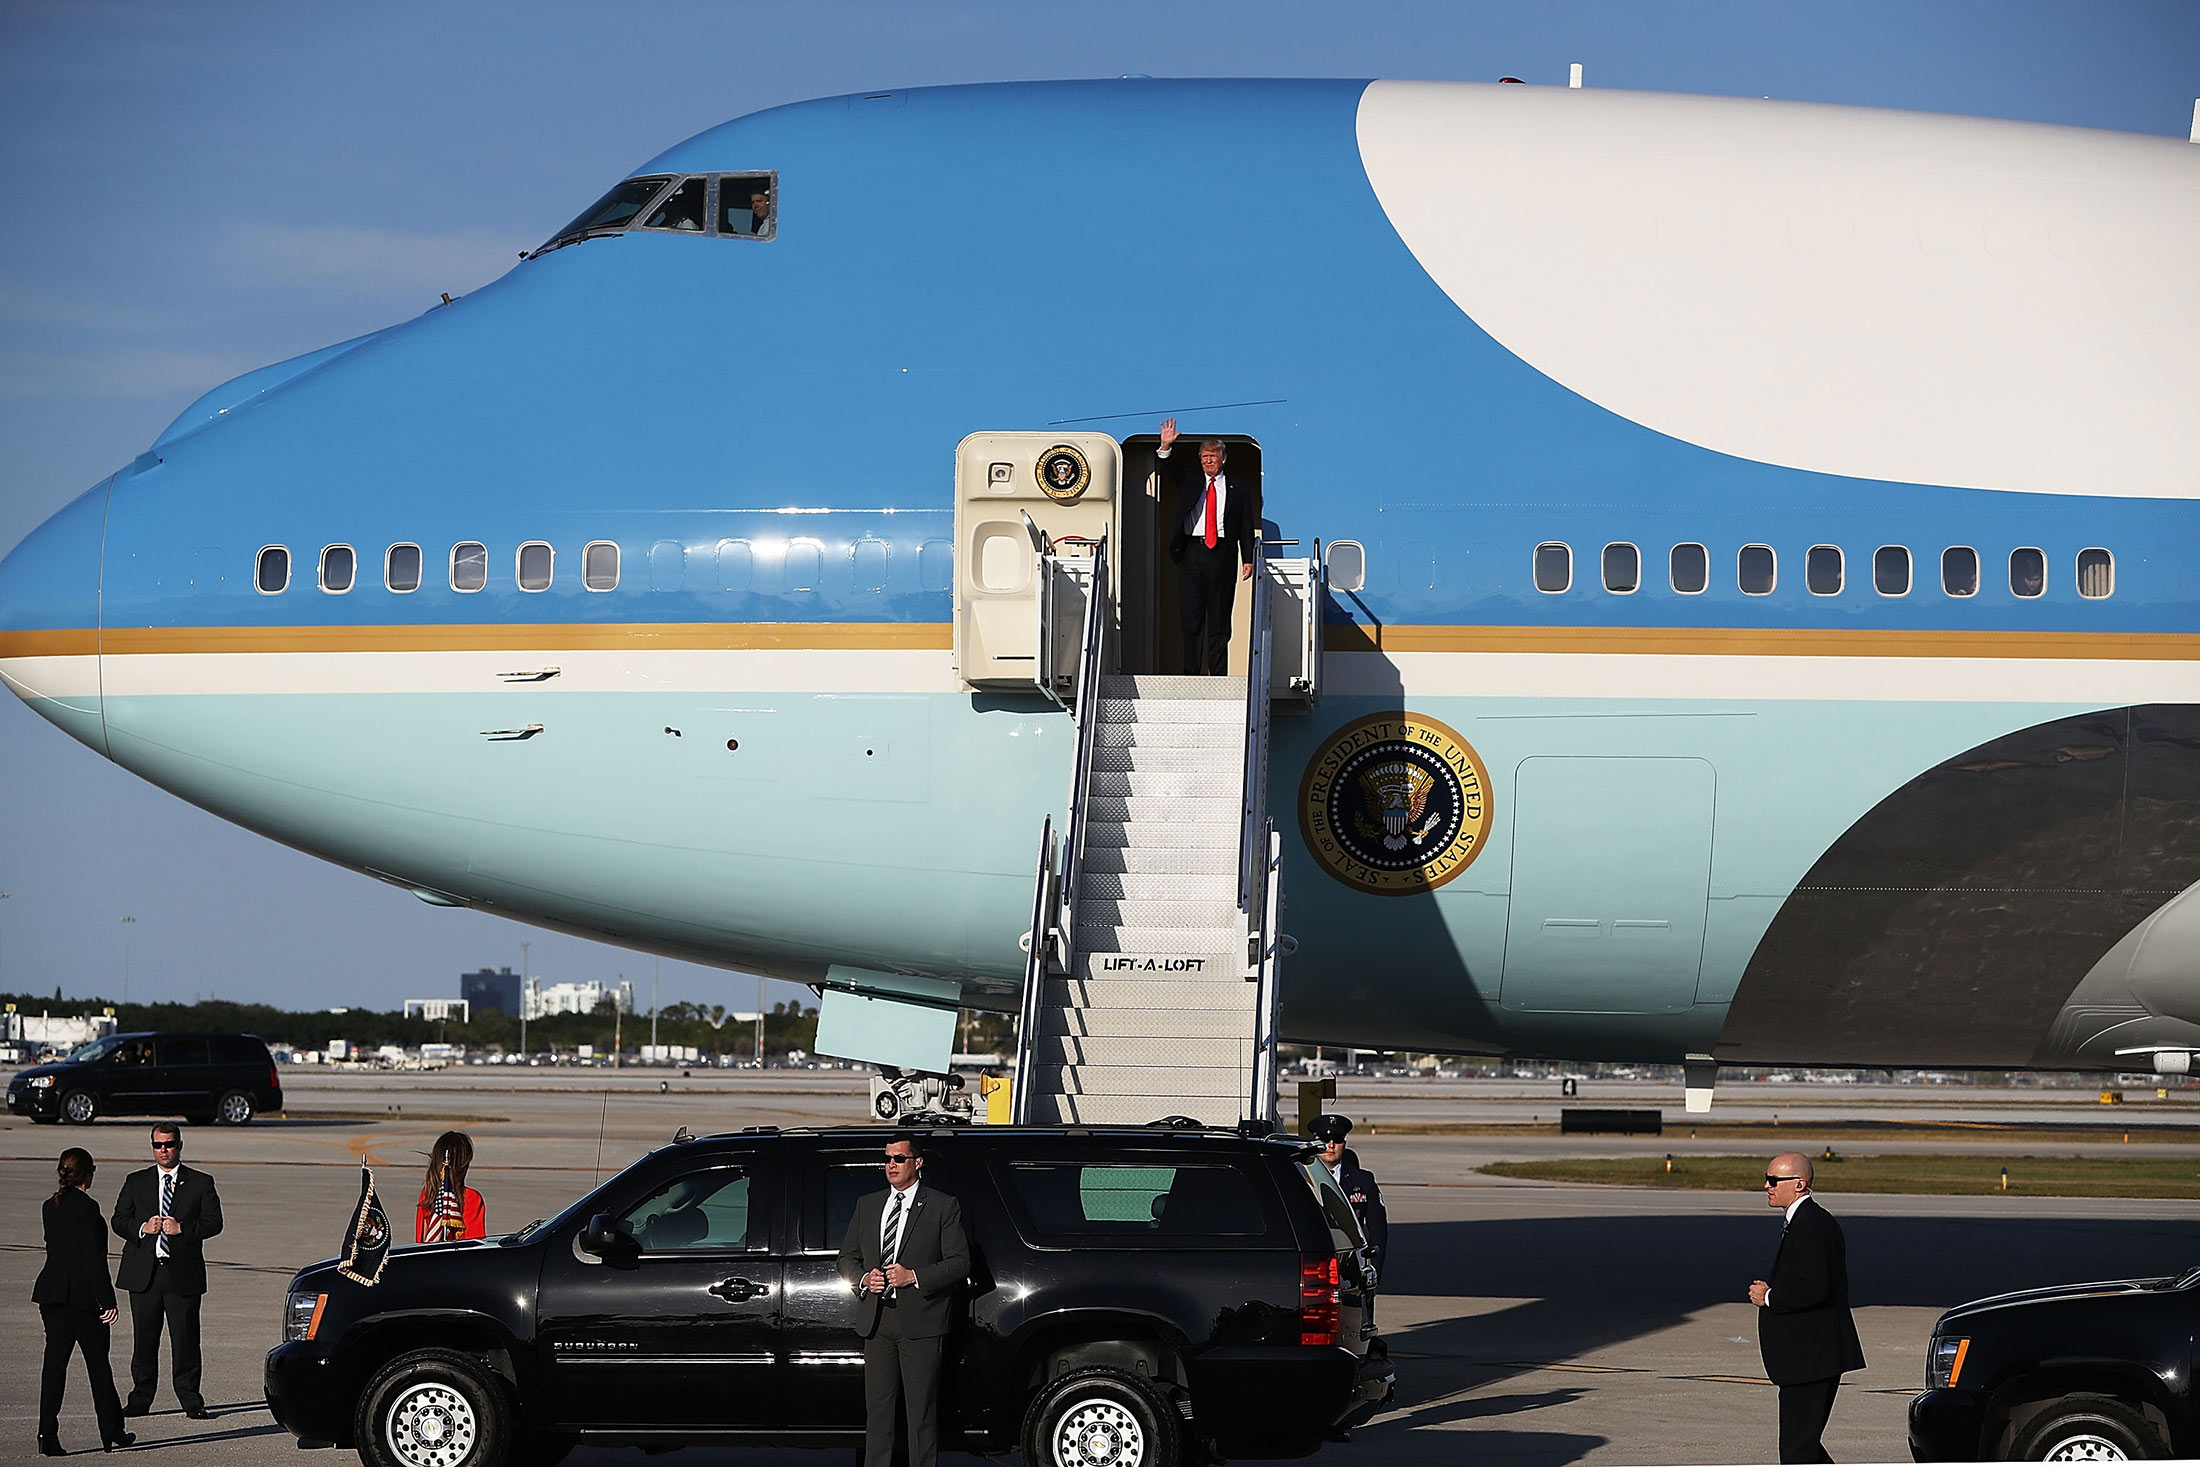 Investigators Probing Plane That Got Too Close To Air Force One